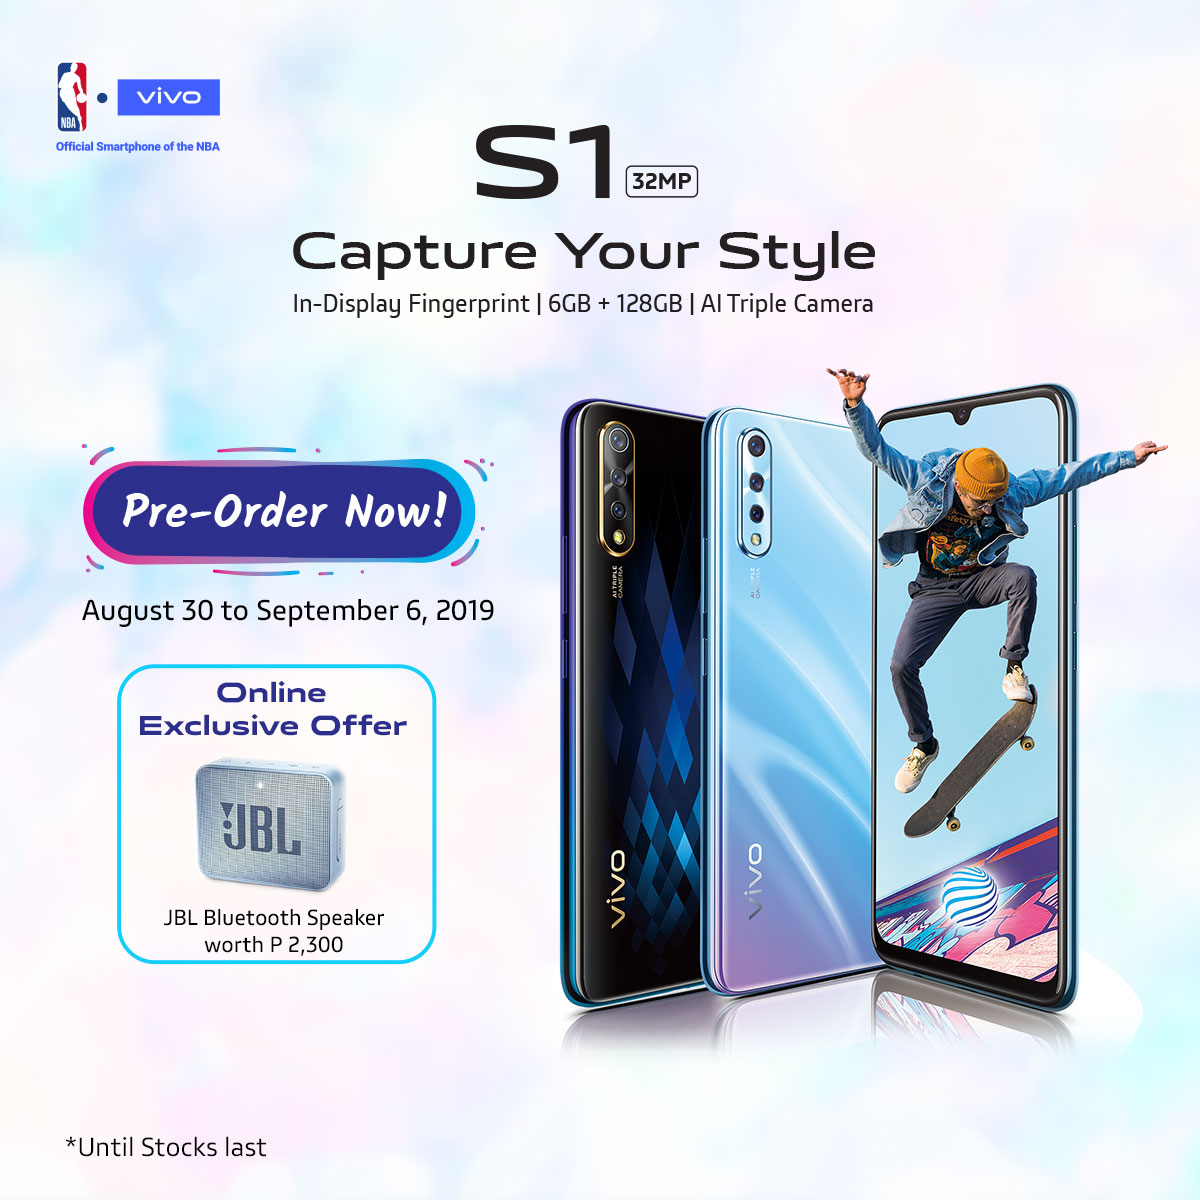 vivo s1, Vivo S1 Now Available for Pre-Order, Gadget Pilipinas